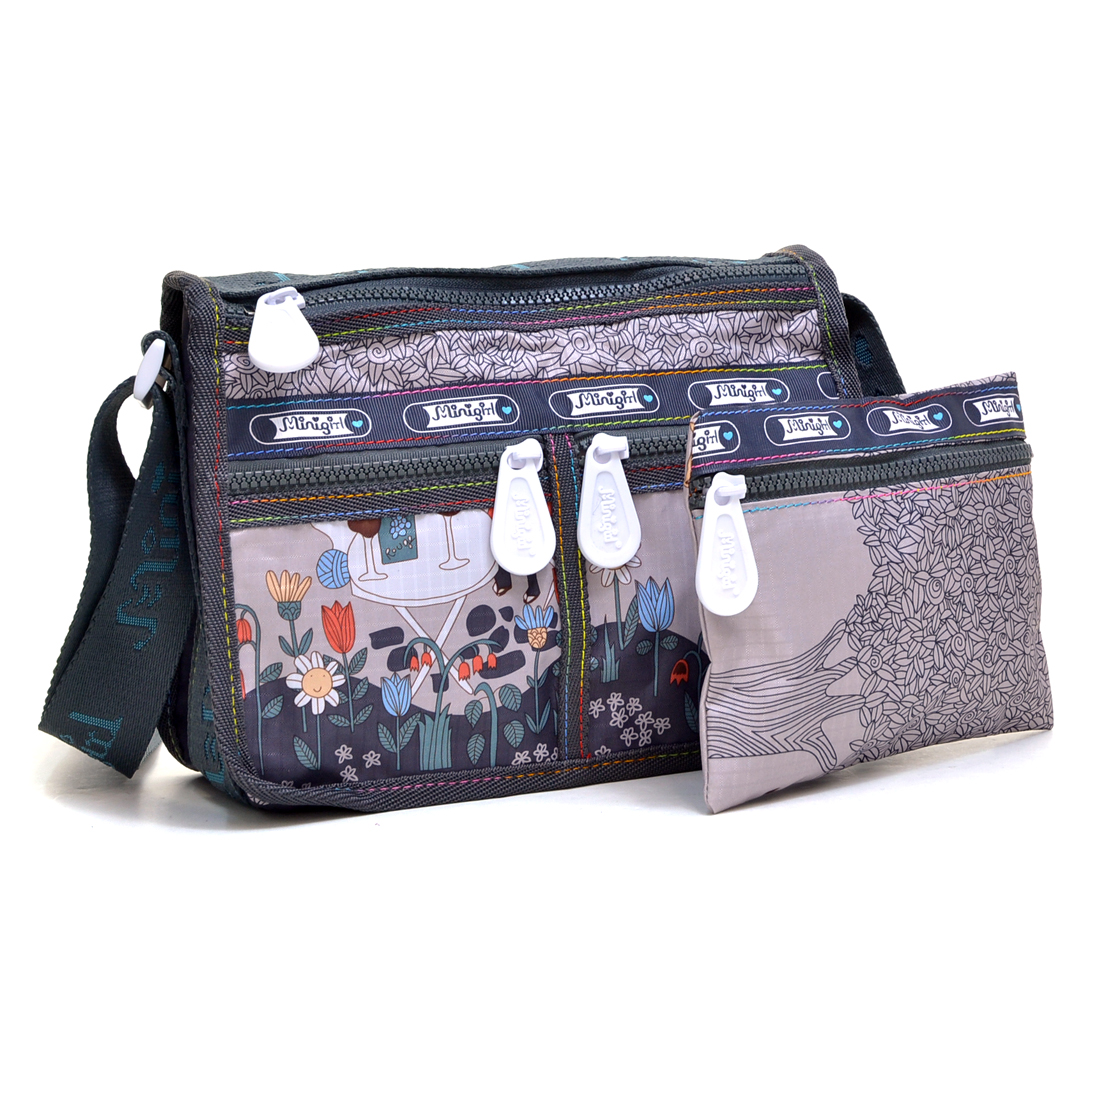 Nylon Fun Prints Messenger Bag with Organizer Bag